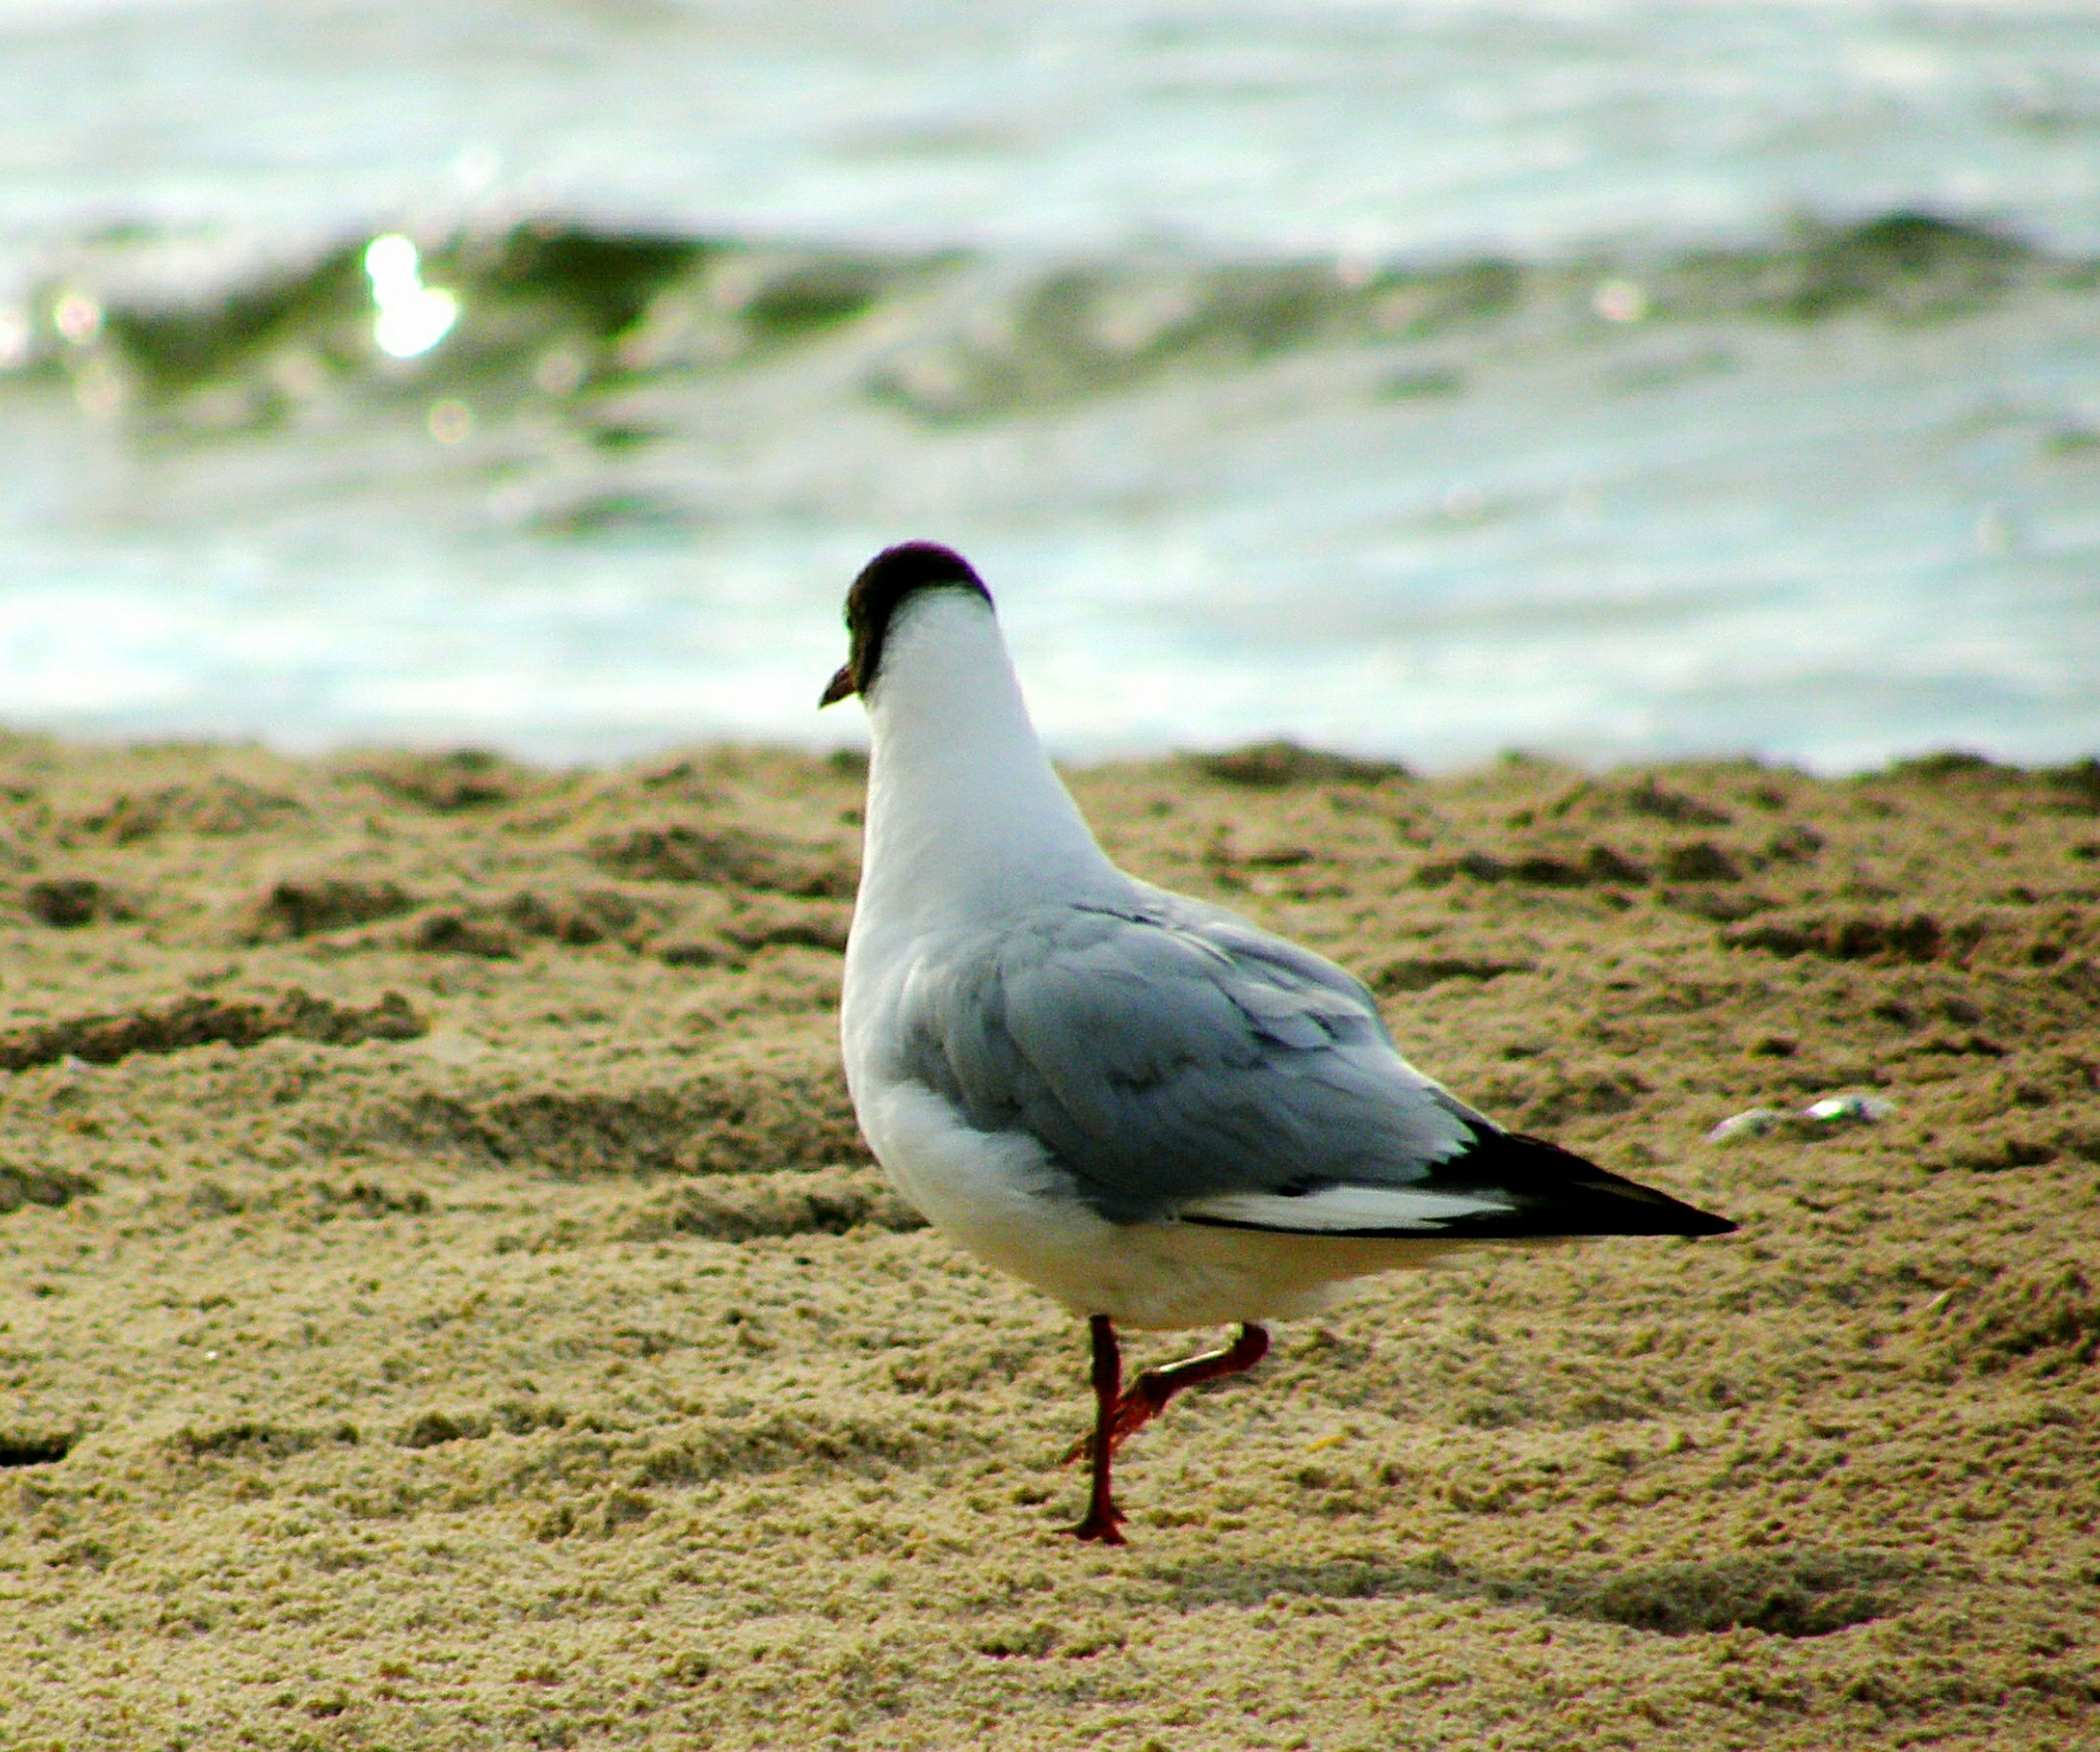 bird, animal themes, animals in the wild, wildlife, one animal, seagull, water, focus on foreground, sea, beach, nature, shore, beak, close-up, side view, full length, day, outdoors, sea bird, sand